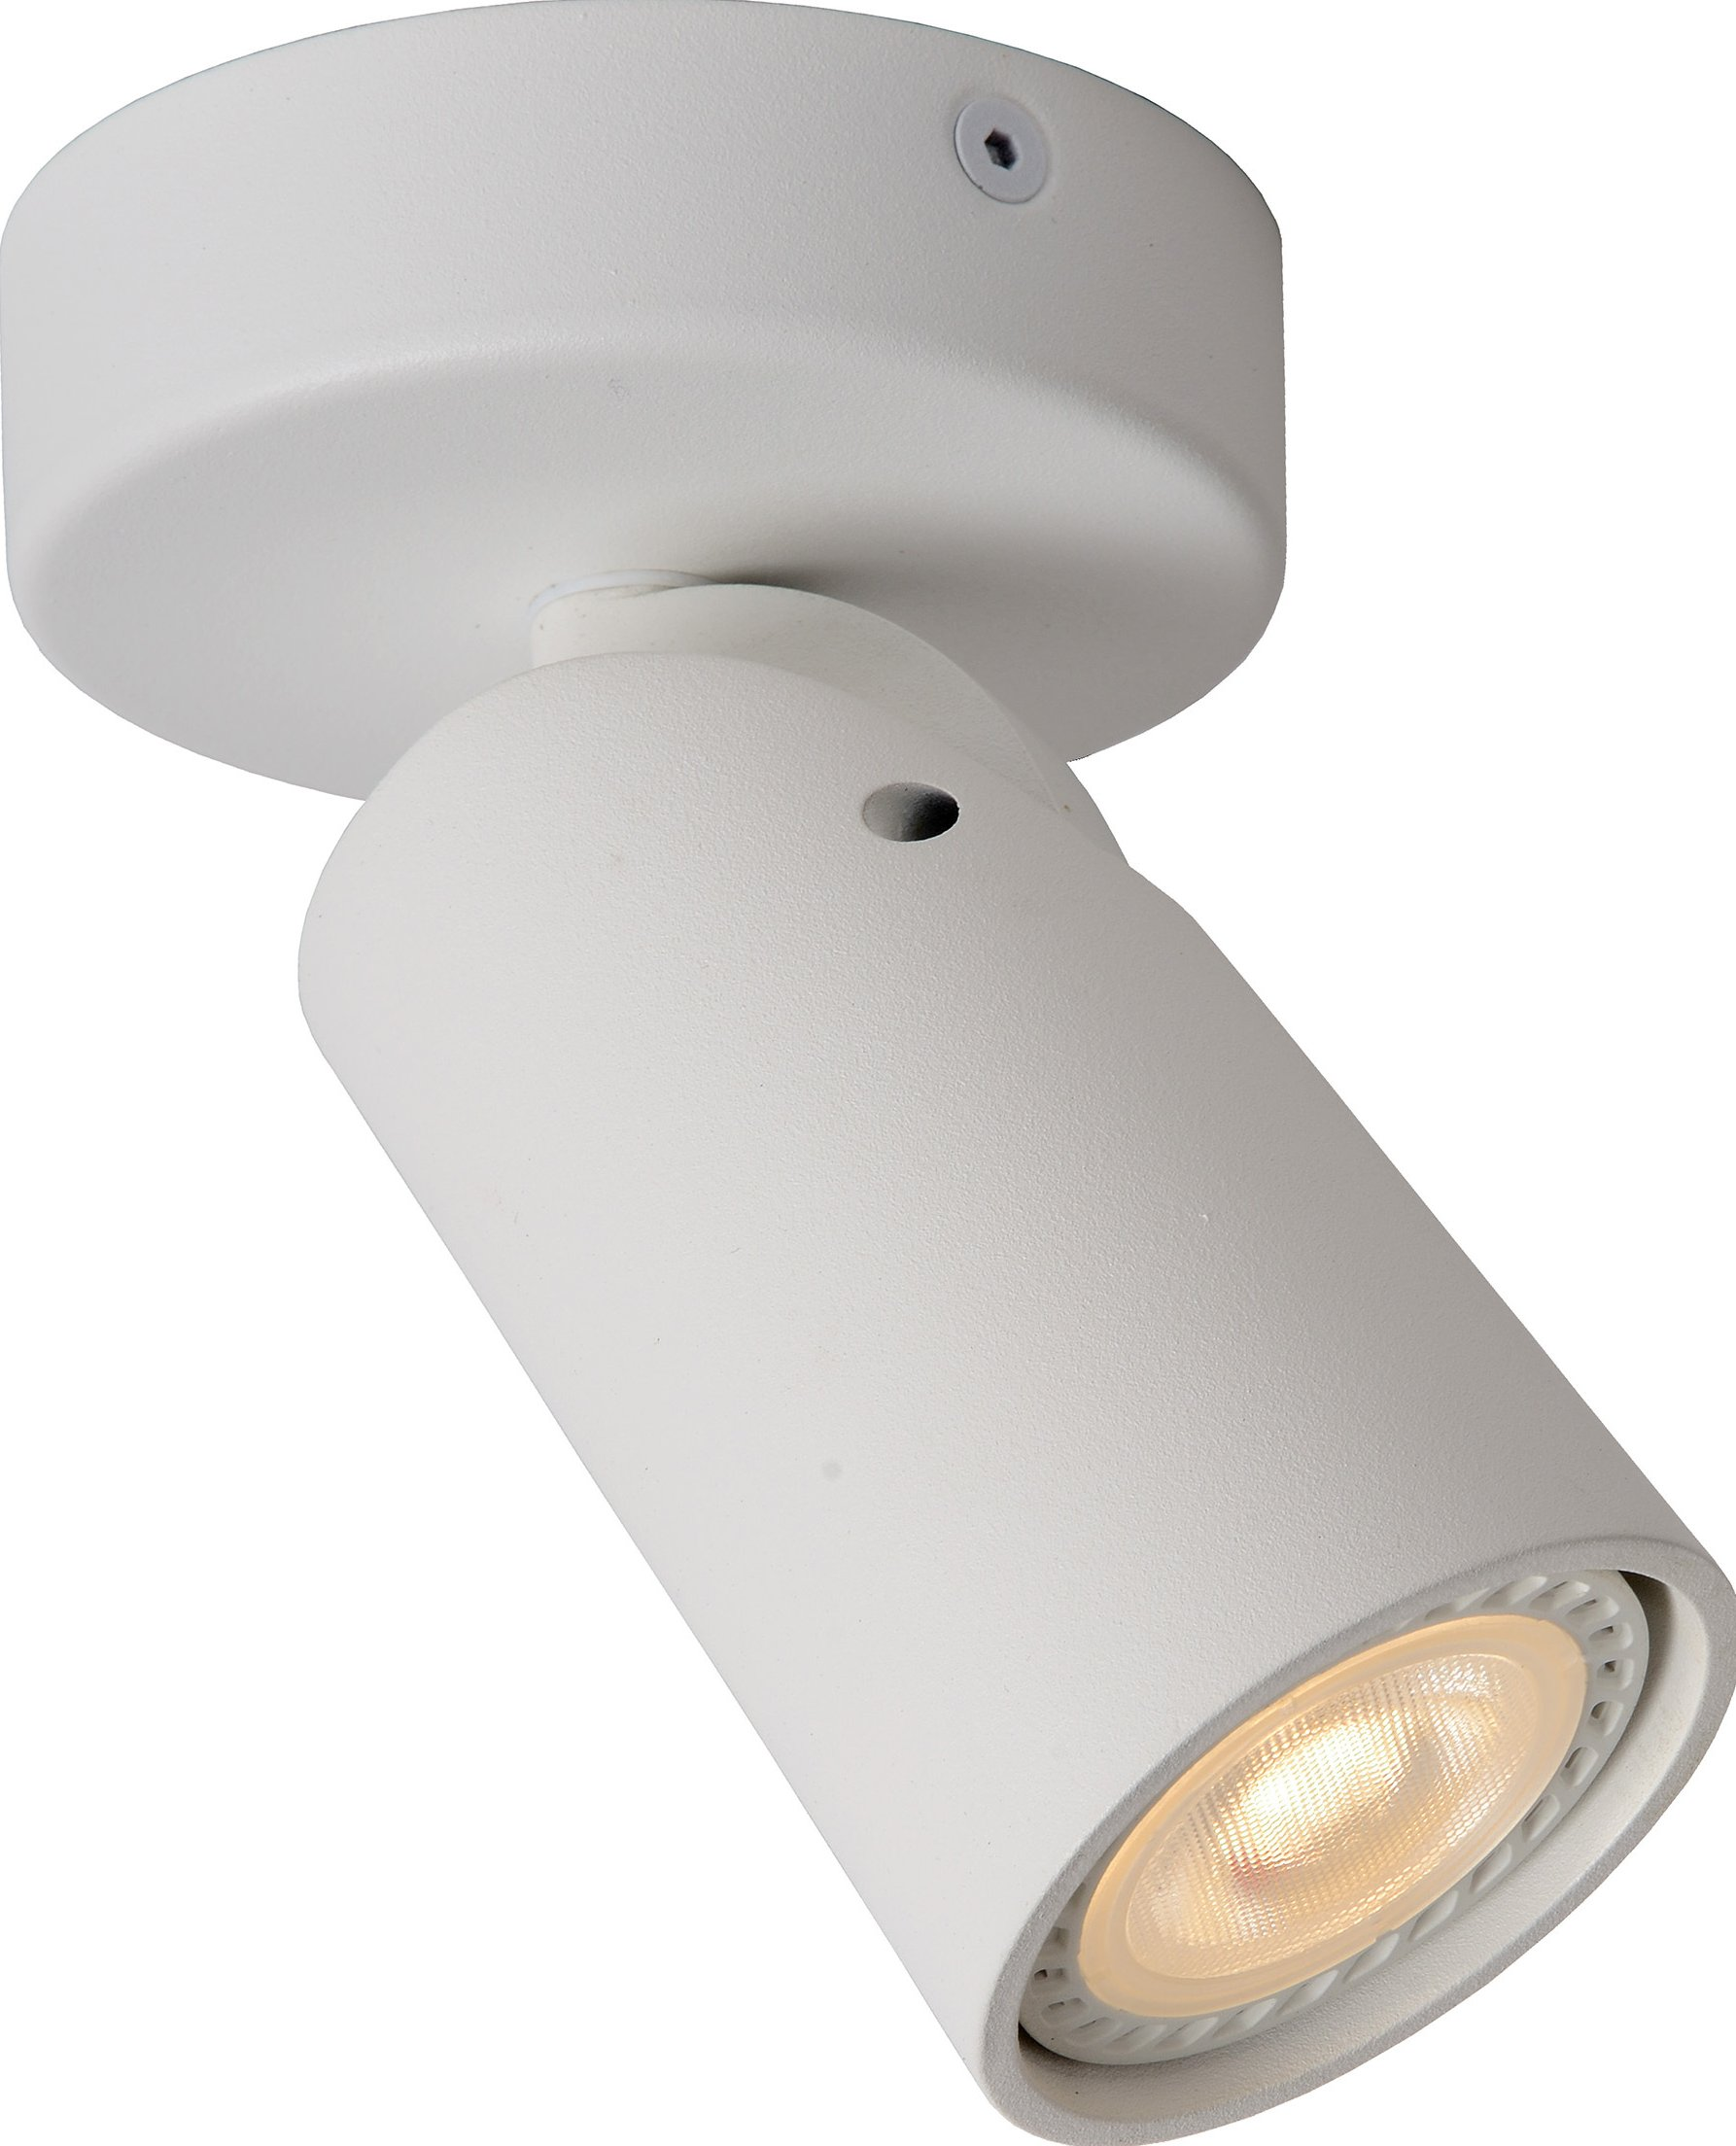 Lucide Xyrus spotlamp